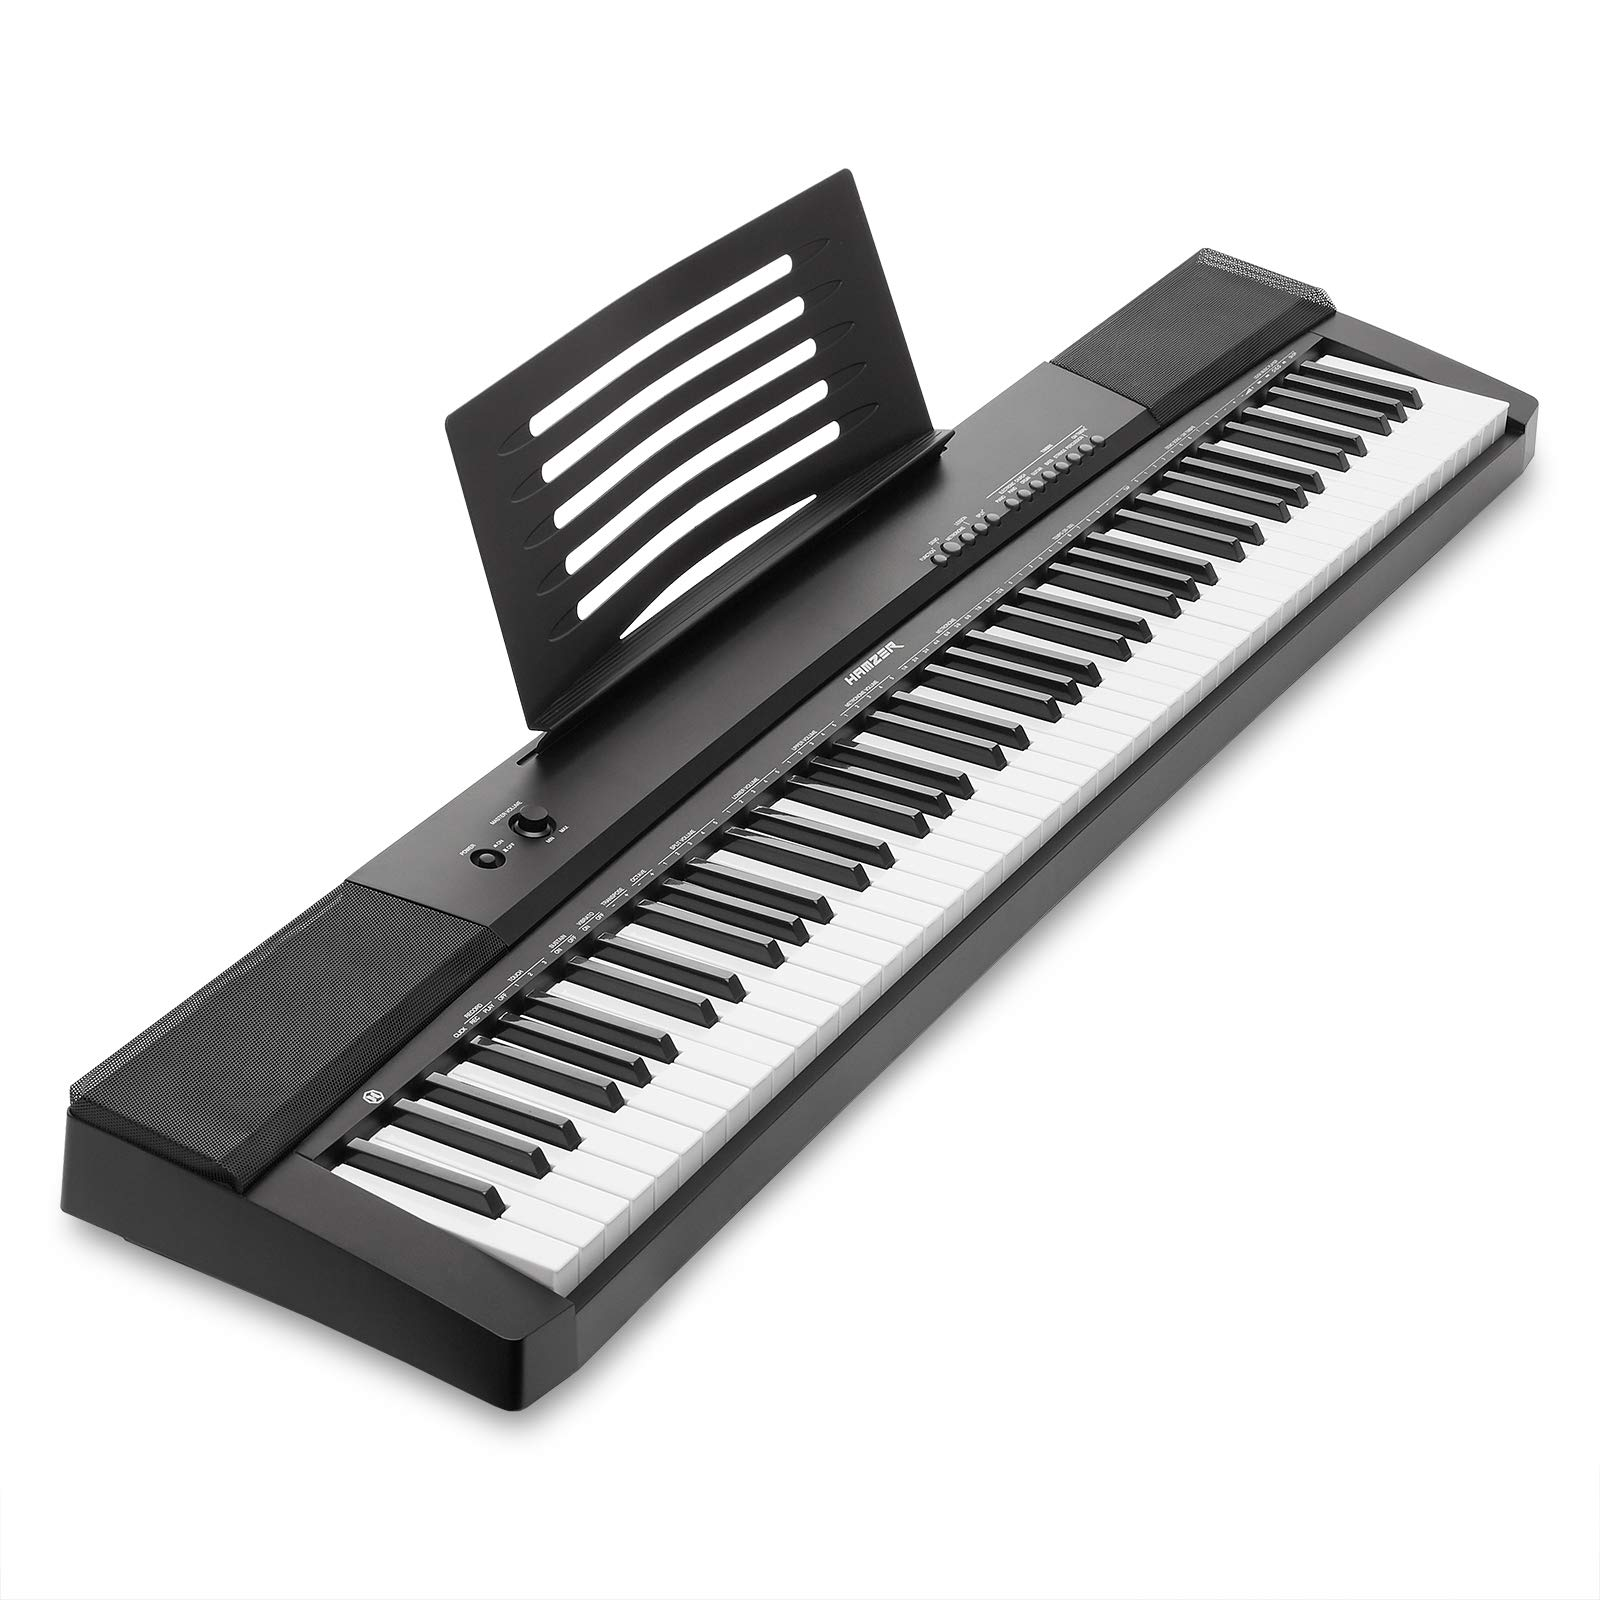 Hamzer 88-Key Electronic Keyboard Portable Digital Music Piano with Touch Sensitive Keys by Hamzer (Image #3)